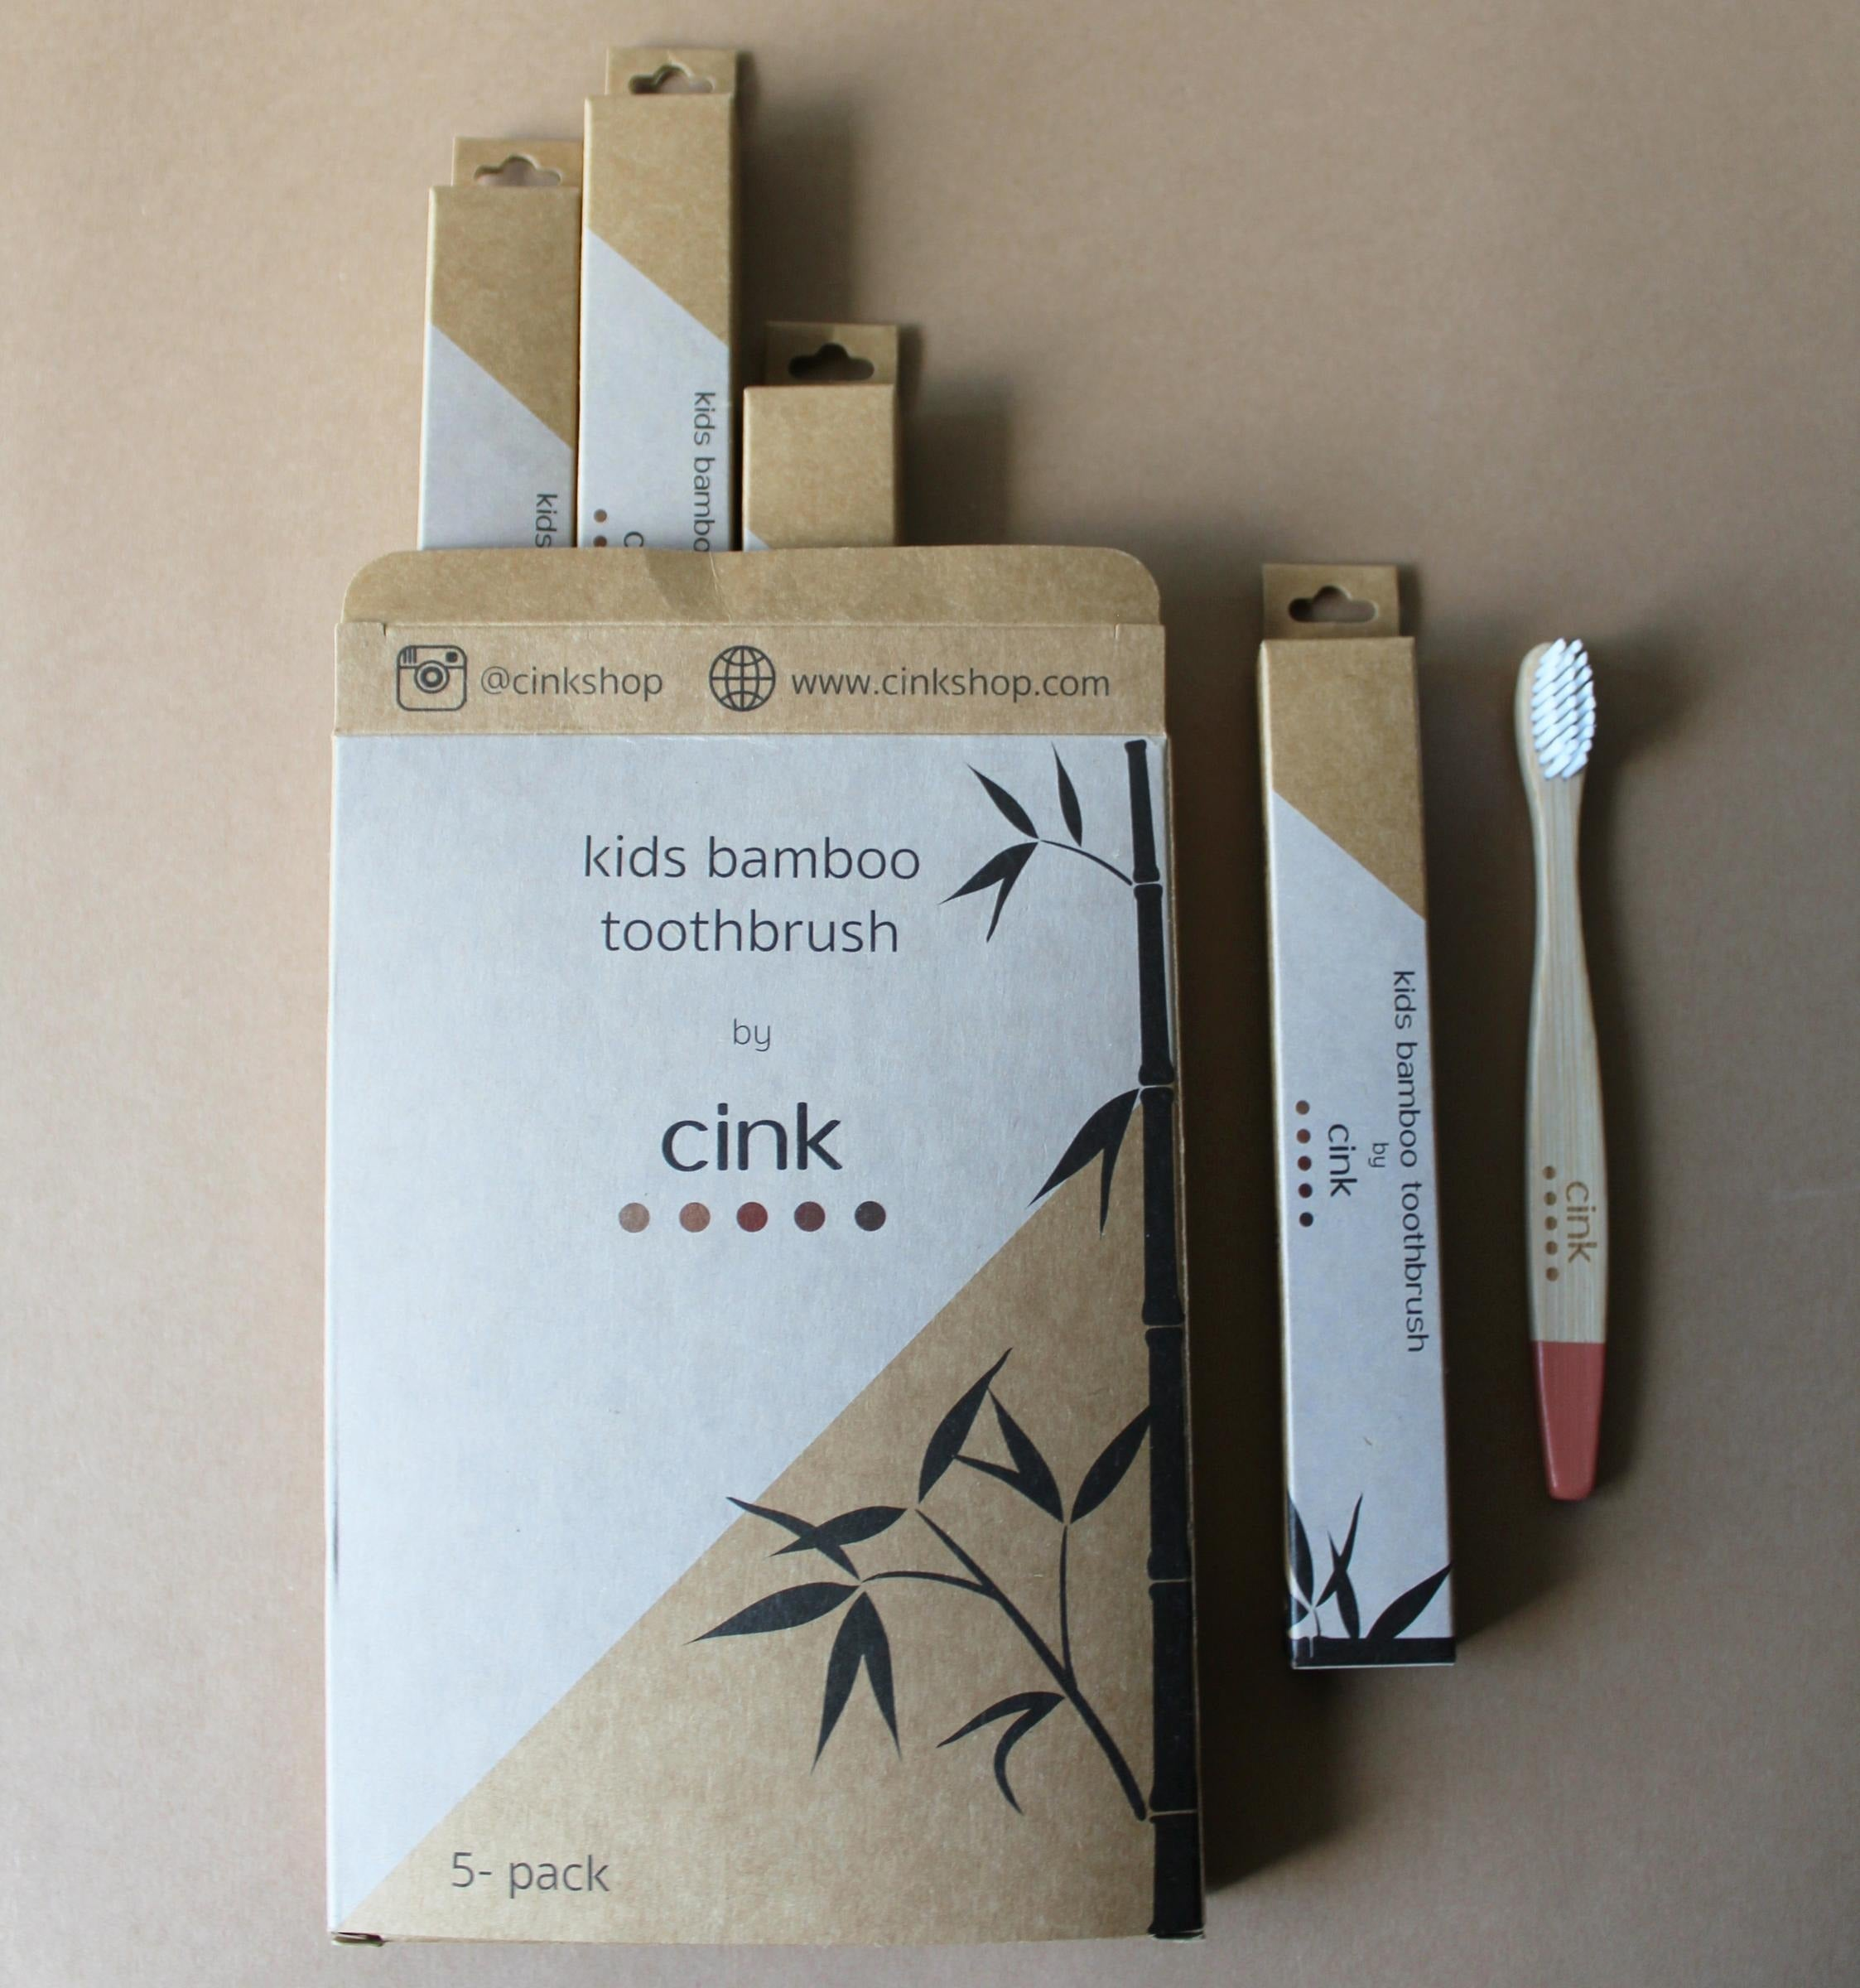 Cink Bamboo toothbrush for kids 5-pack